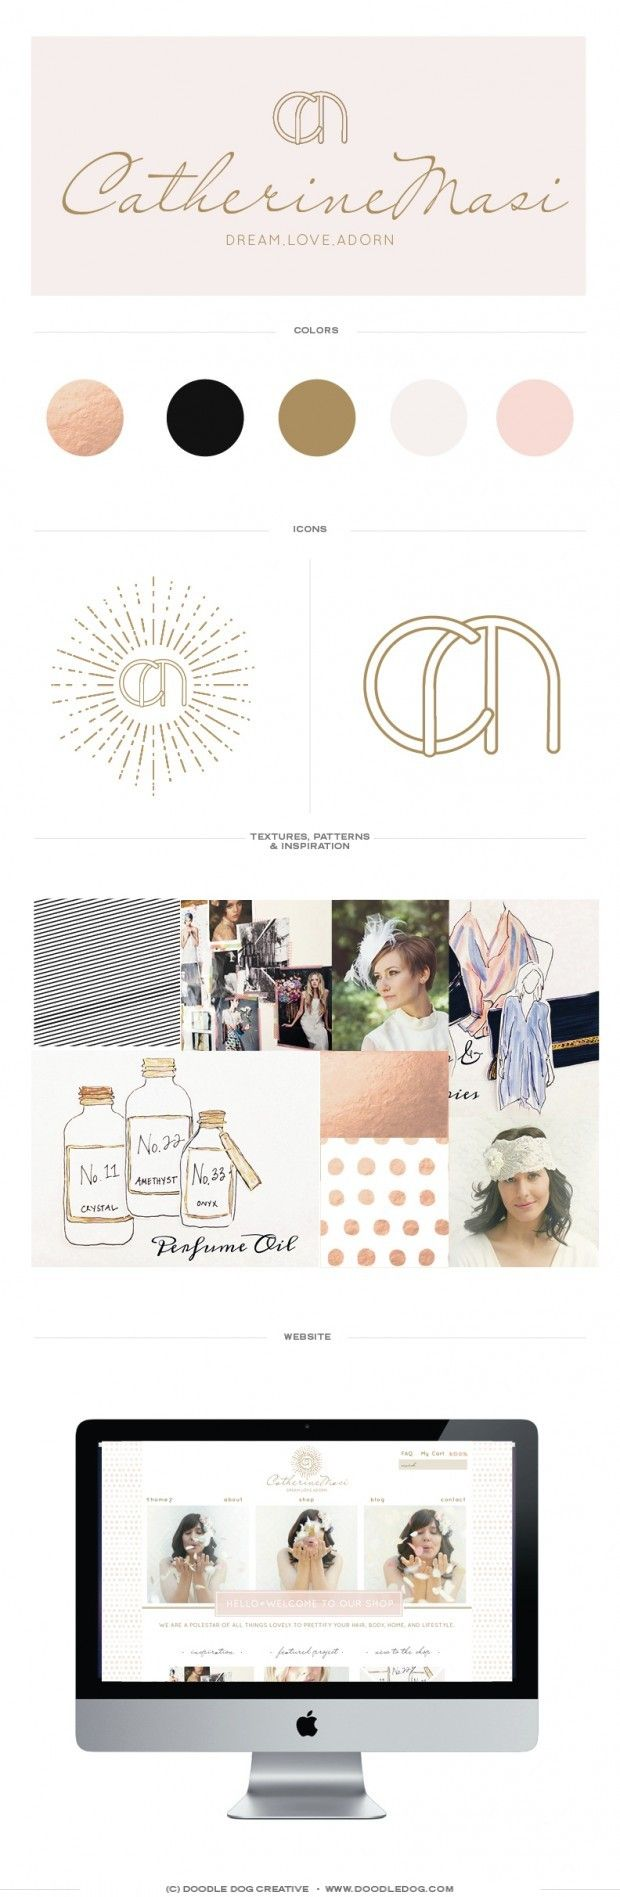 Brand Identity for fashion driven eCommerce website, Catherine Masi! — Doodle Dog Creative. custom logo design, custom branding, custom site, custom website design, custom site design, logo inspiration